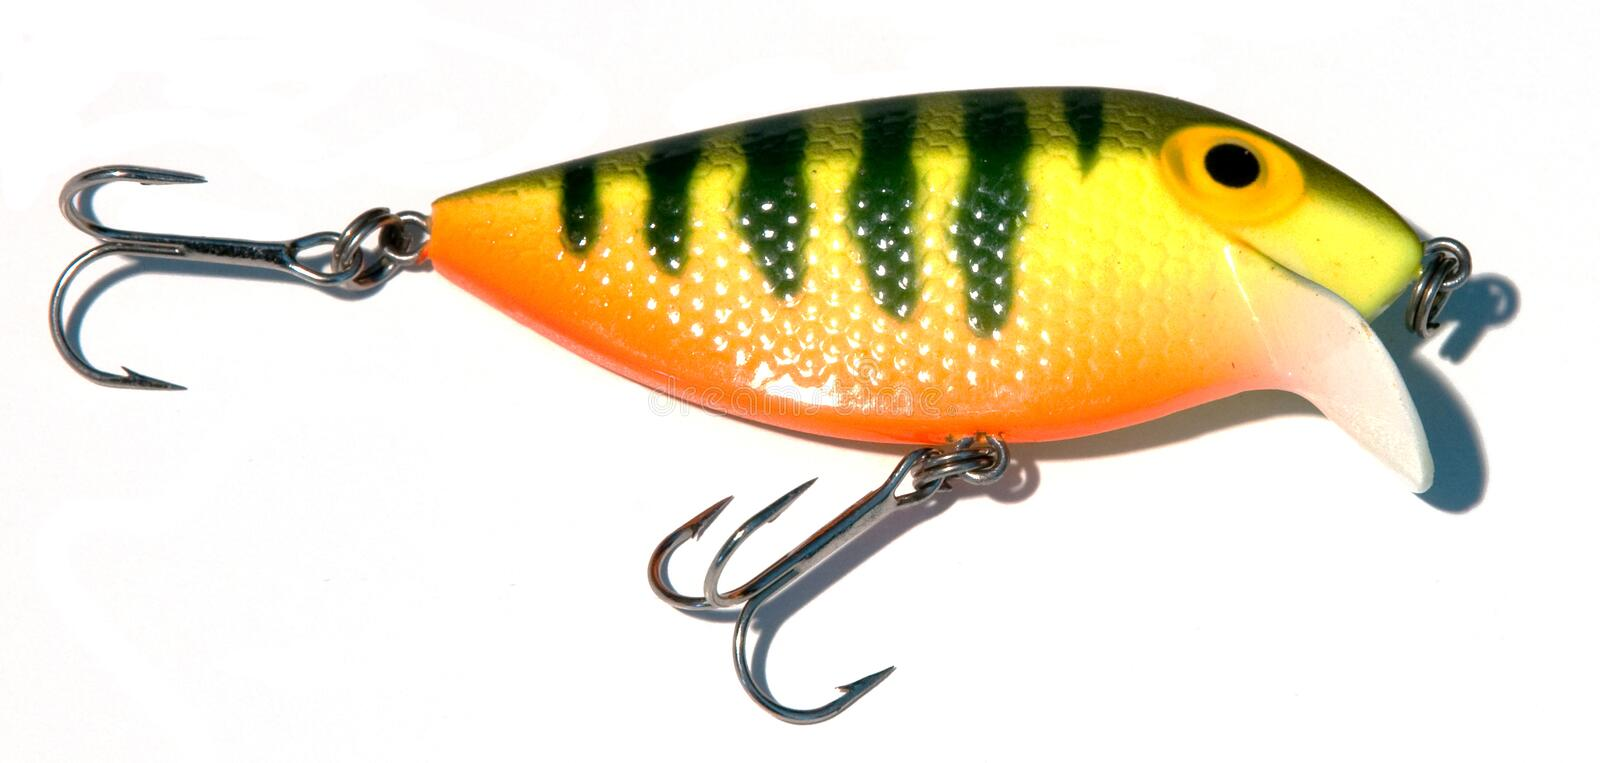 Fishing tackle 1 stock images